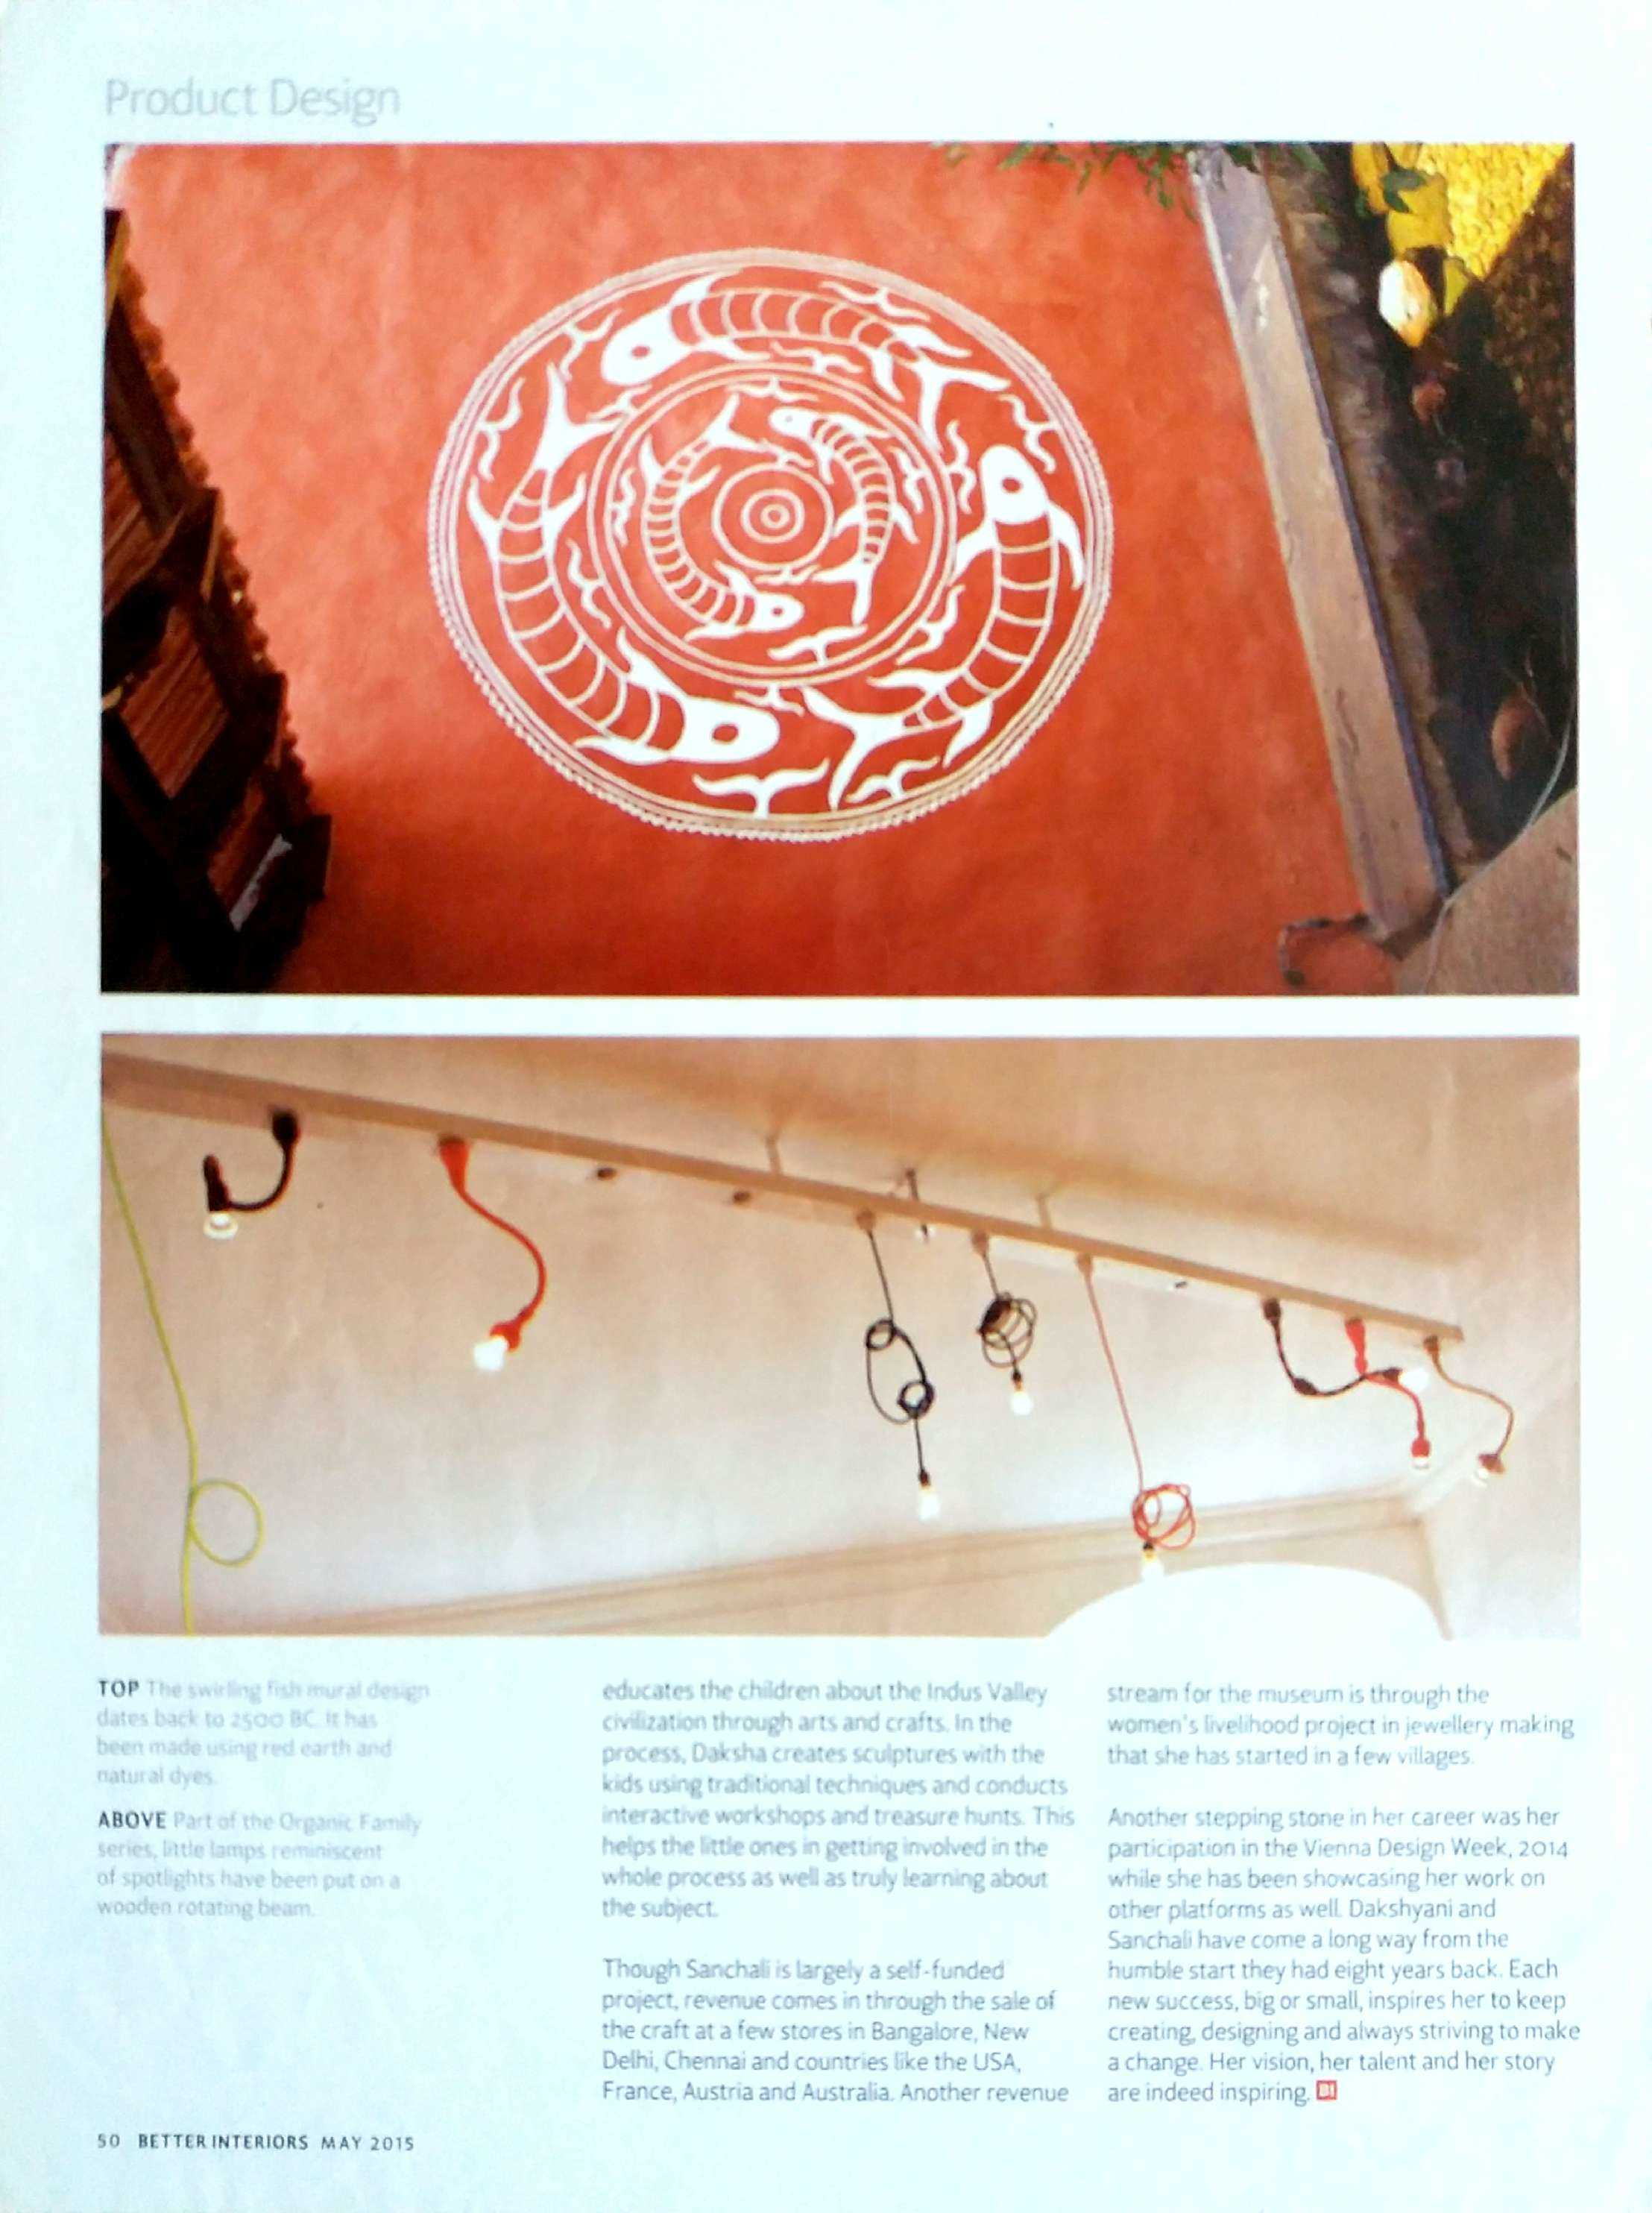 BETTER INTERIORS 2015, India (page 2)